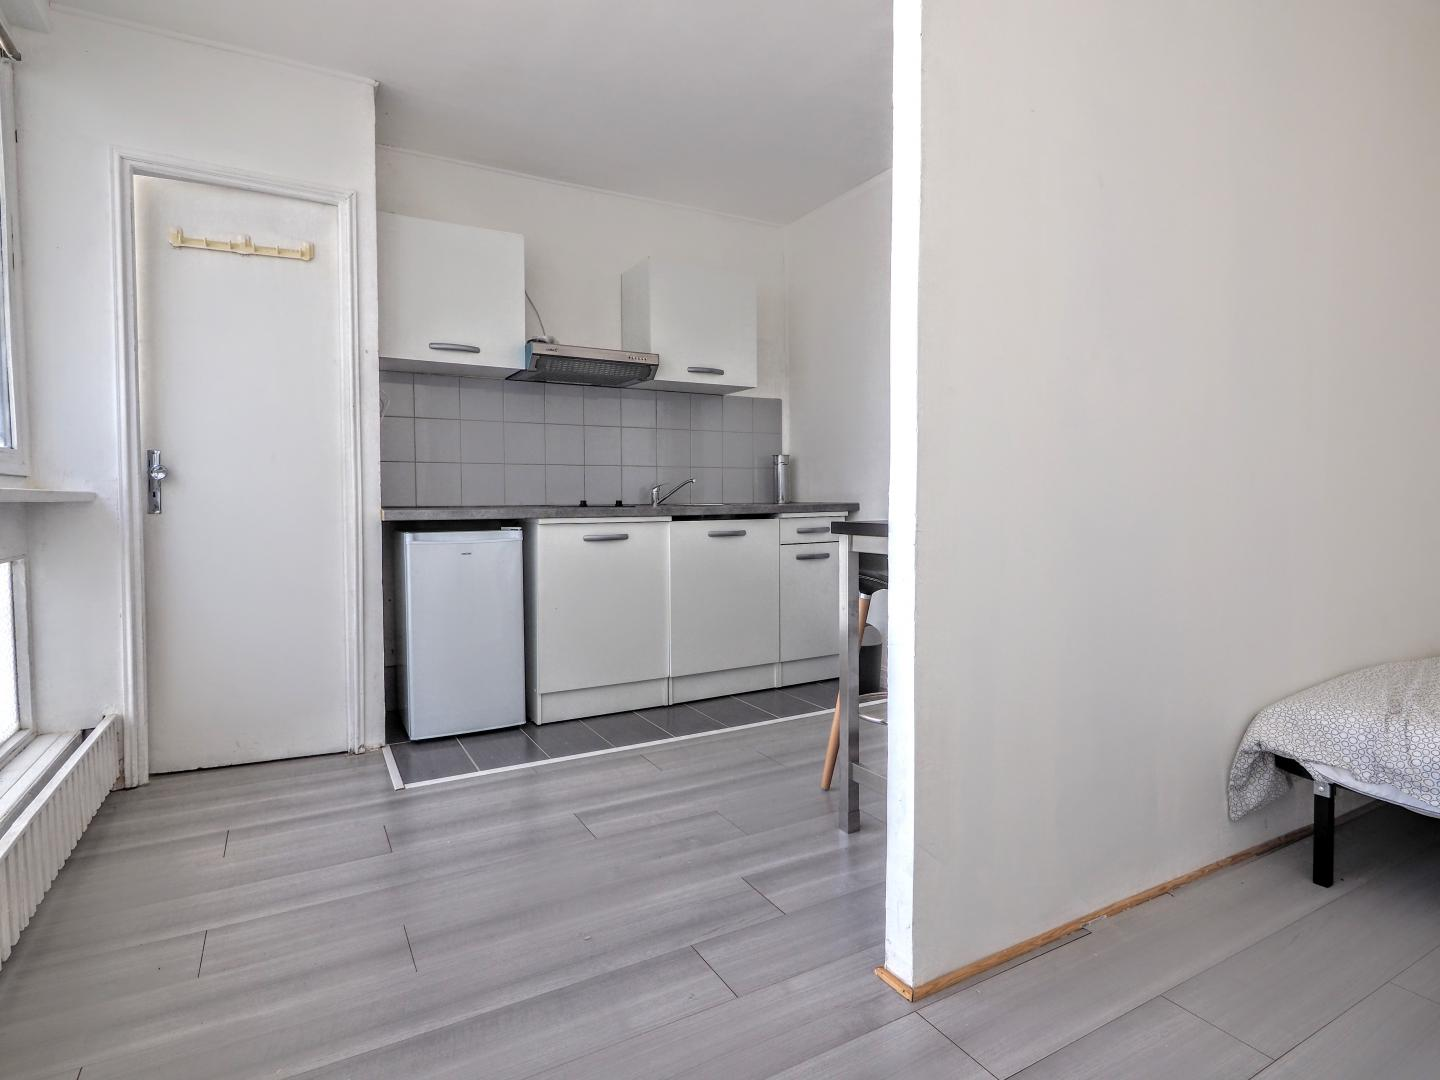 Location appartements meubles paris t1 etudiants montparnasse 75006 - Location meuble paris etudiant ...